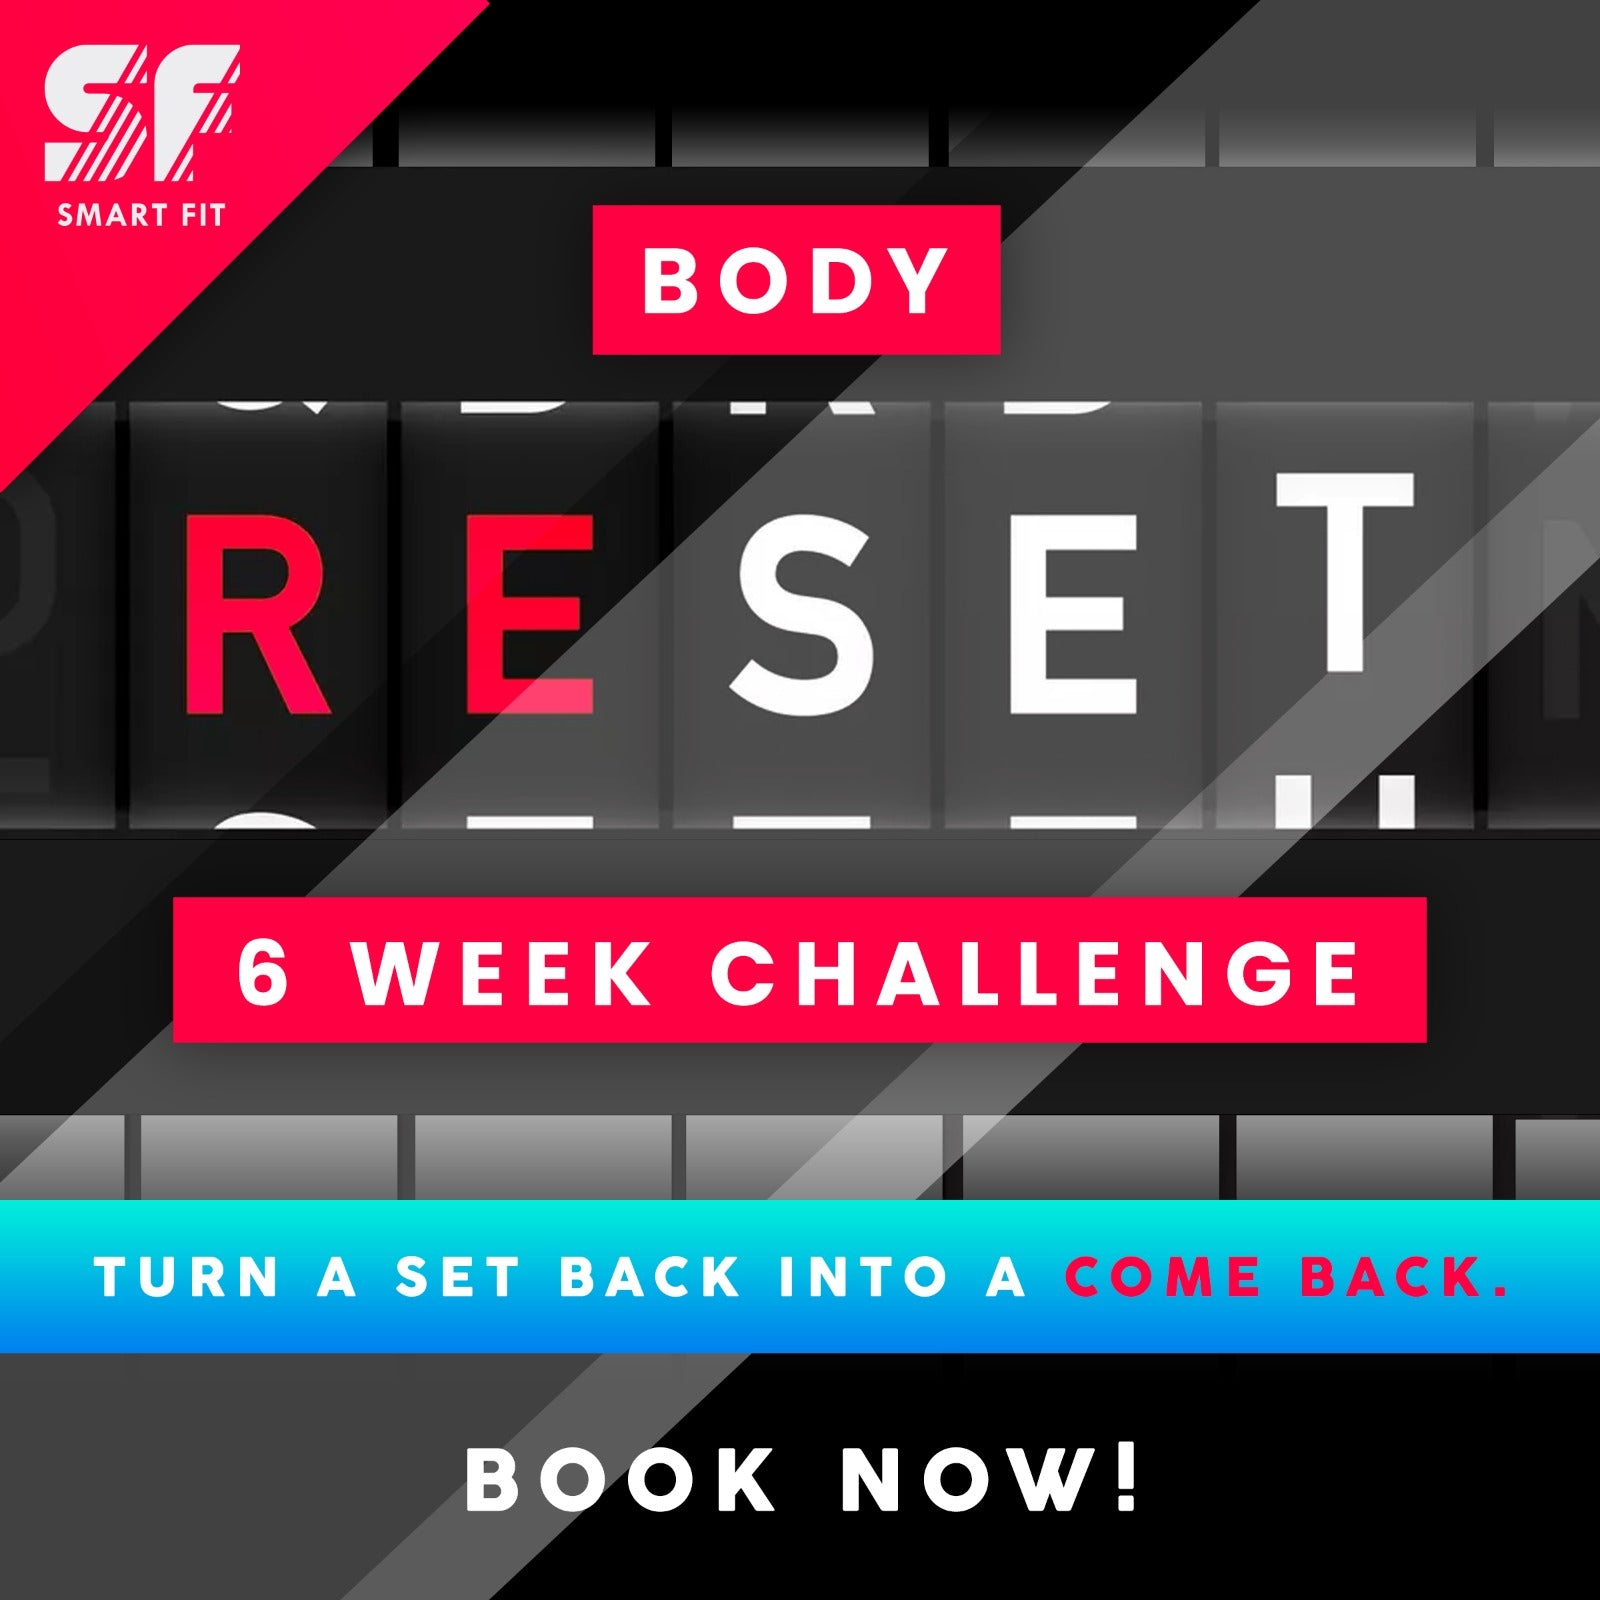 Body Reset 6 week challenge